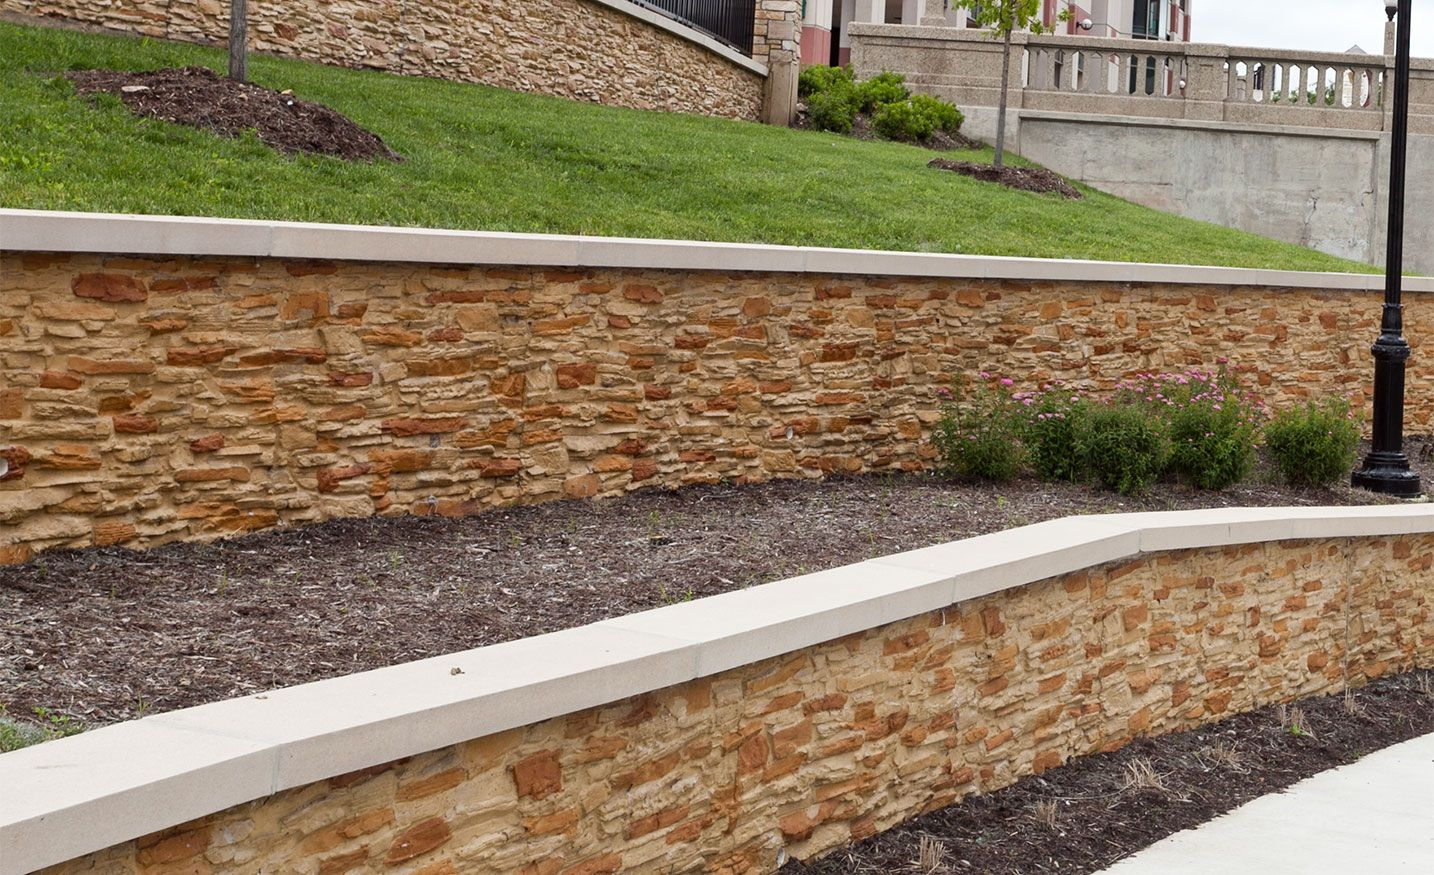 Decorative Concrete Block Wall Construction Concrete Retaining